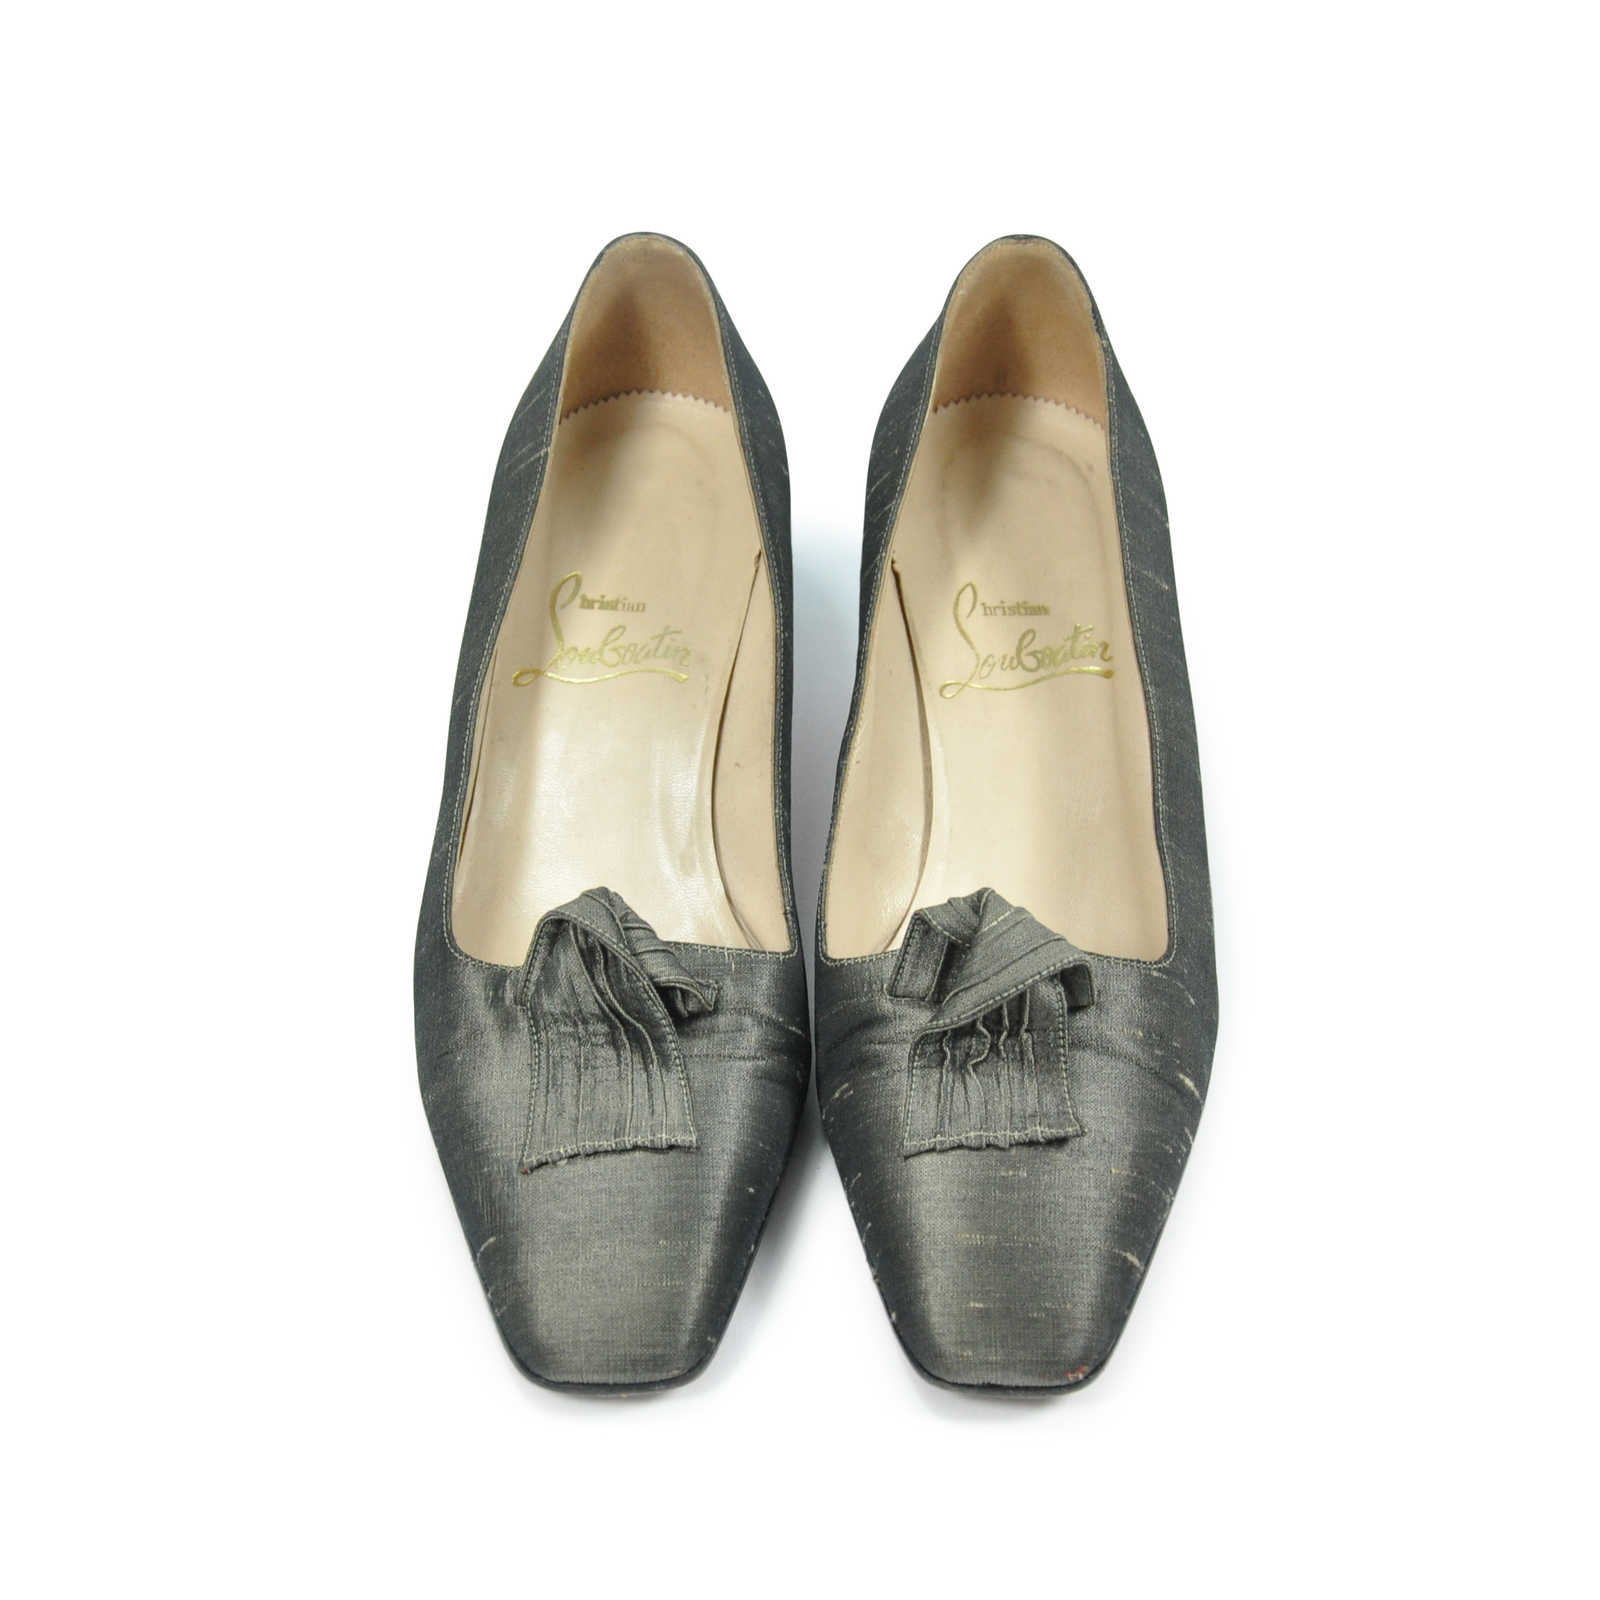 29a67594874a Authentic Second Hand Christian Louboutin Silk Pumps (PSS-067-00025) -  Thumbnail ...